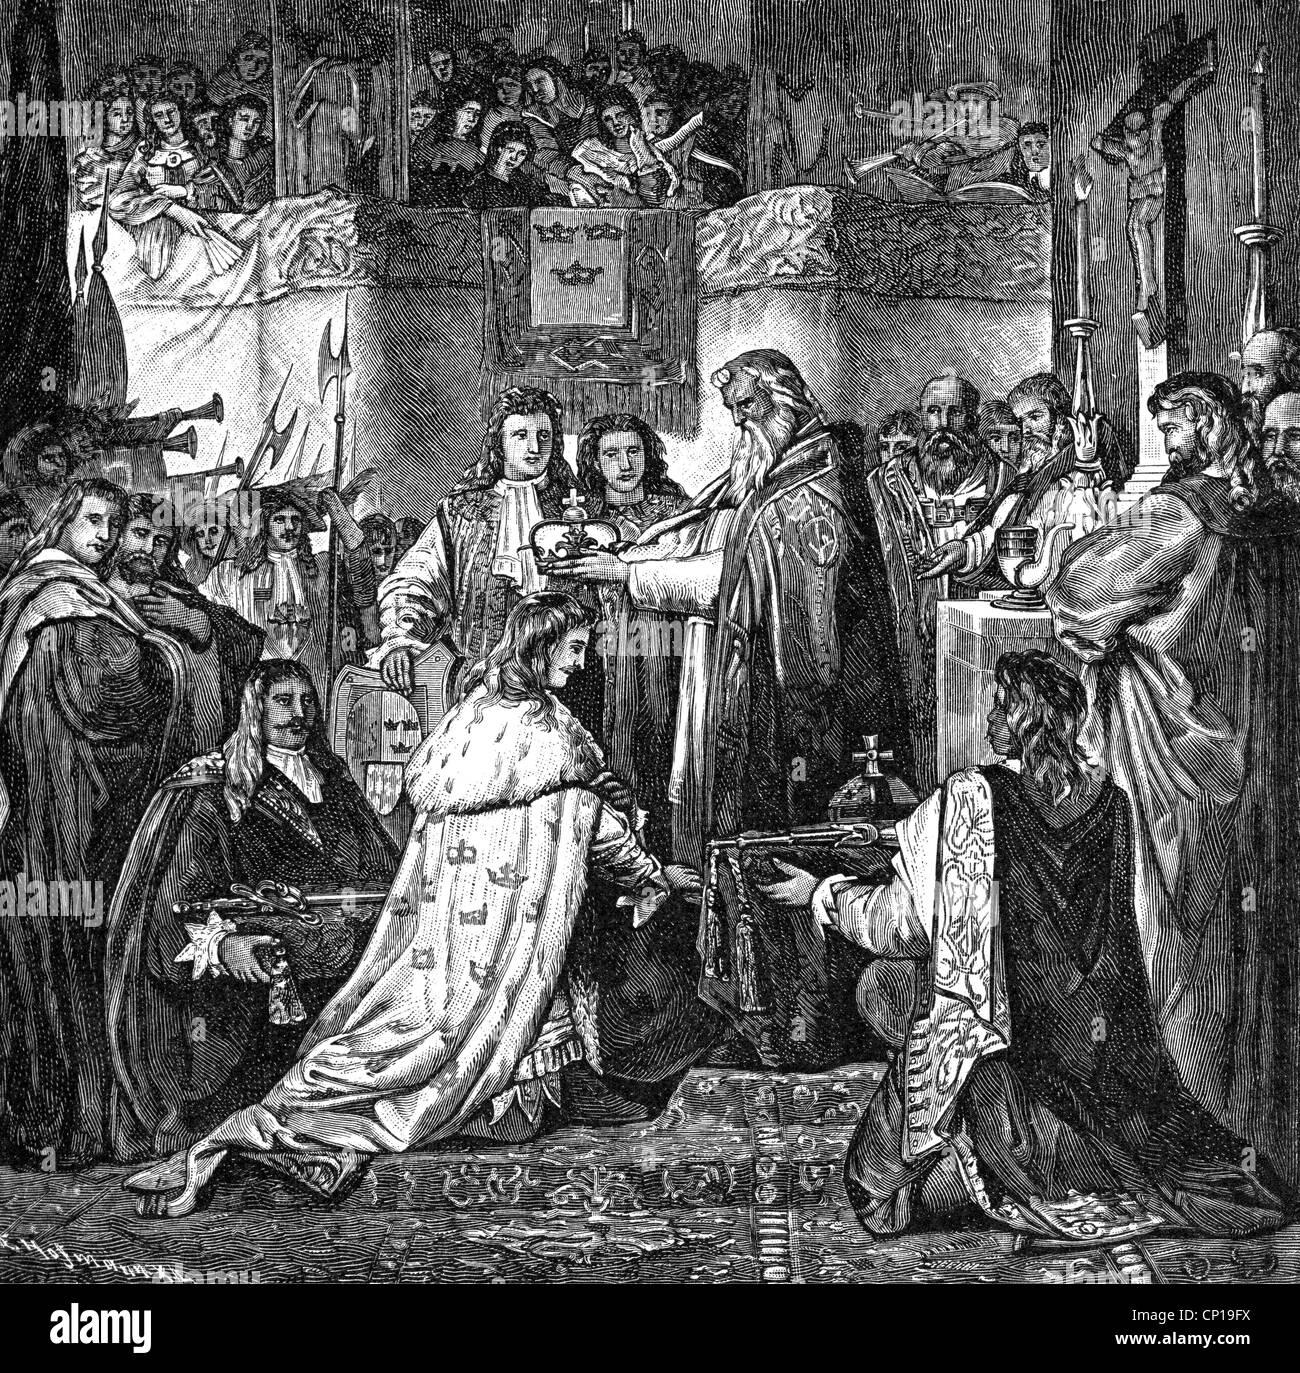 Charles X Gustav, 8.11.1622 - 23 2.1660, King of Sweden 16.6.1654 -  23.2.1660, coronation in the Uppsala Cathedral, 1654, wood engraving, 19th  century, ...